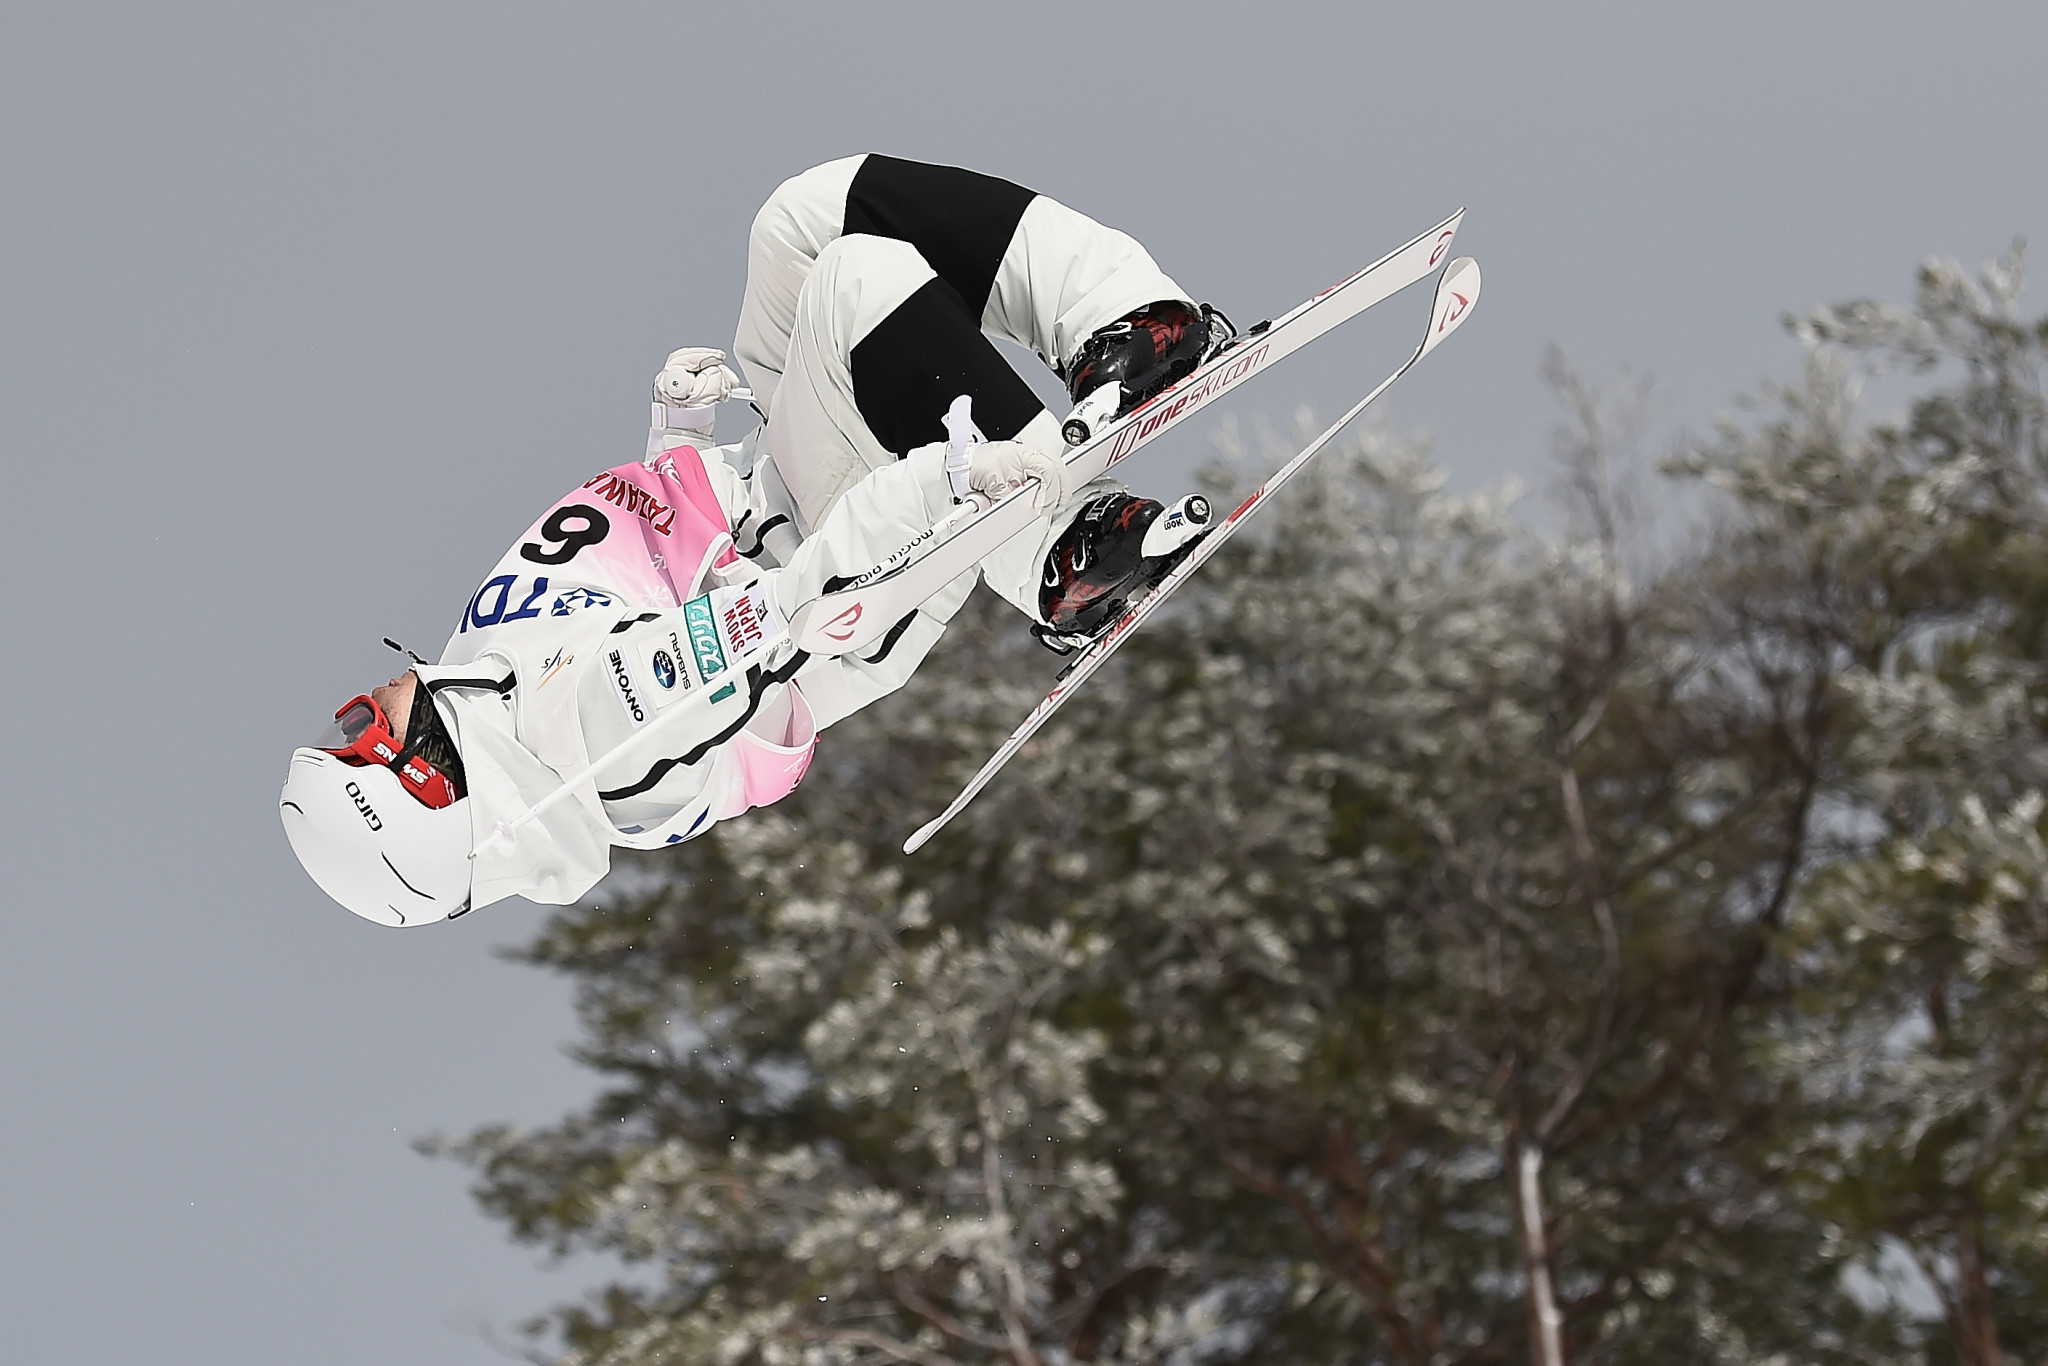 Japan's Ikuma Horishima will look to win a fourth consecutive World Cup win in Airolo ©Getty Images